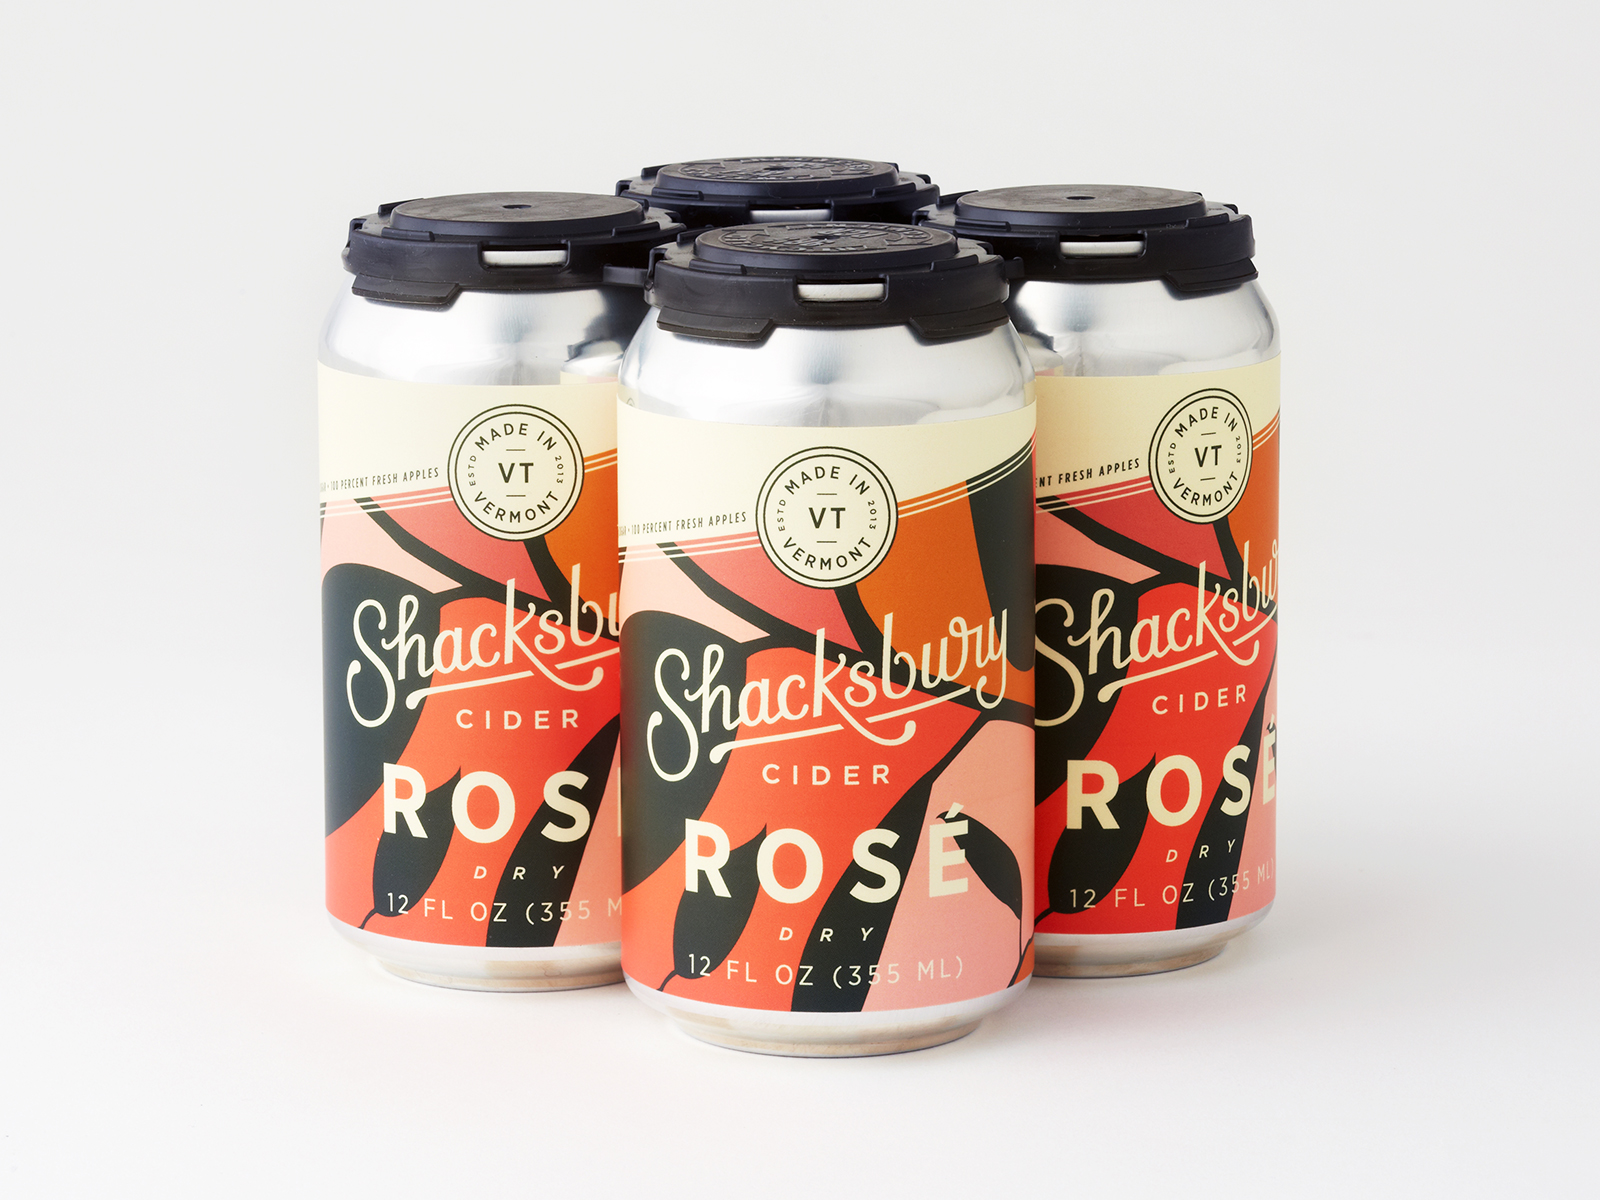 shackbury rose cider hard apple cider